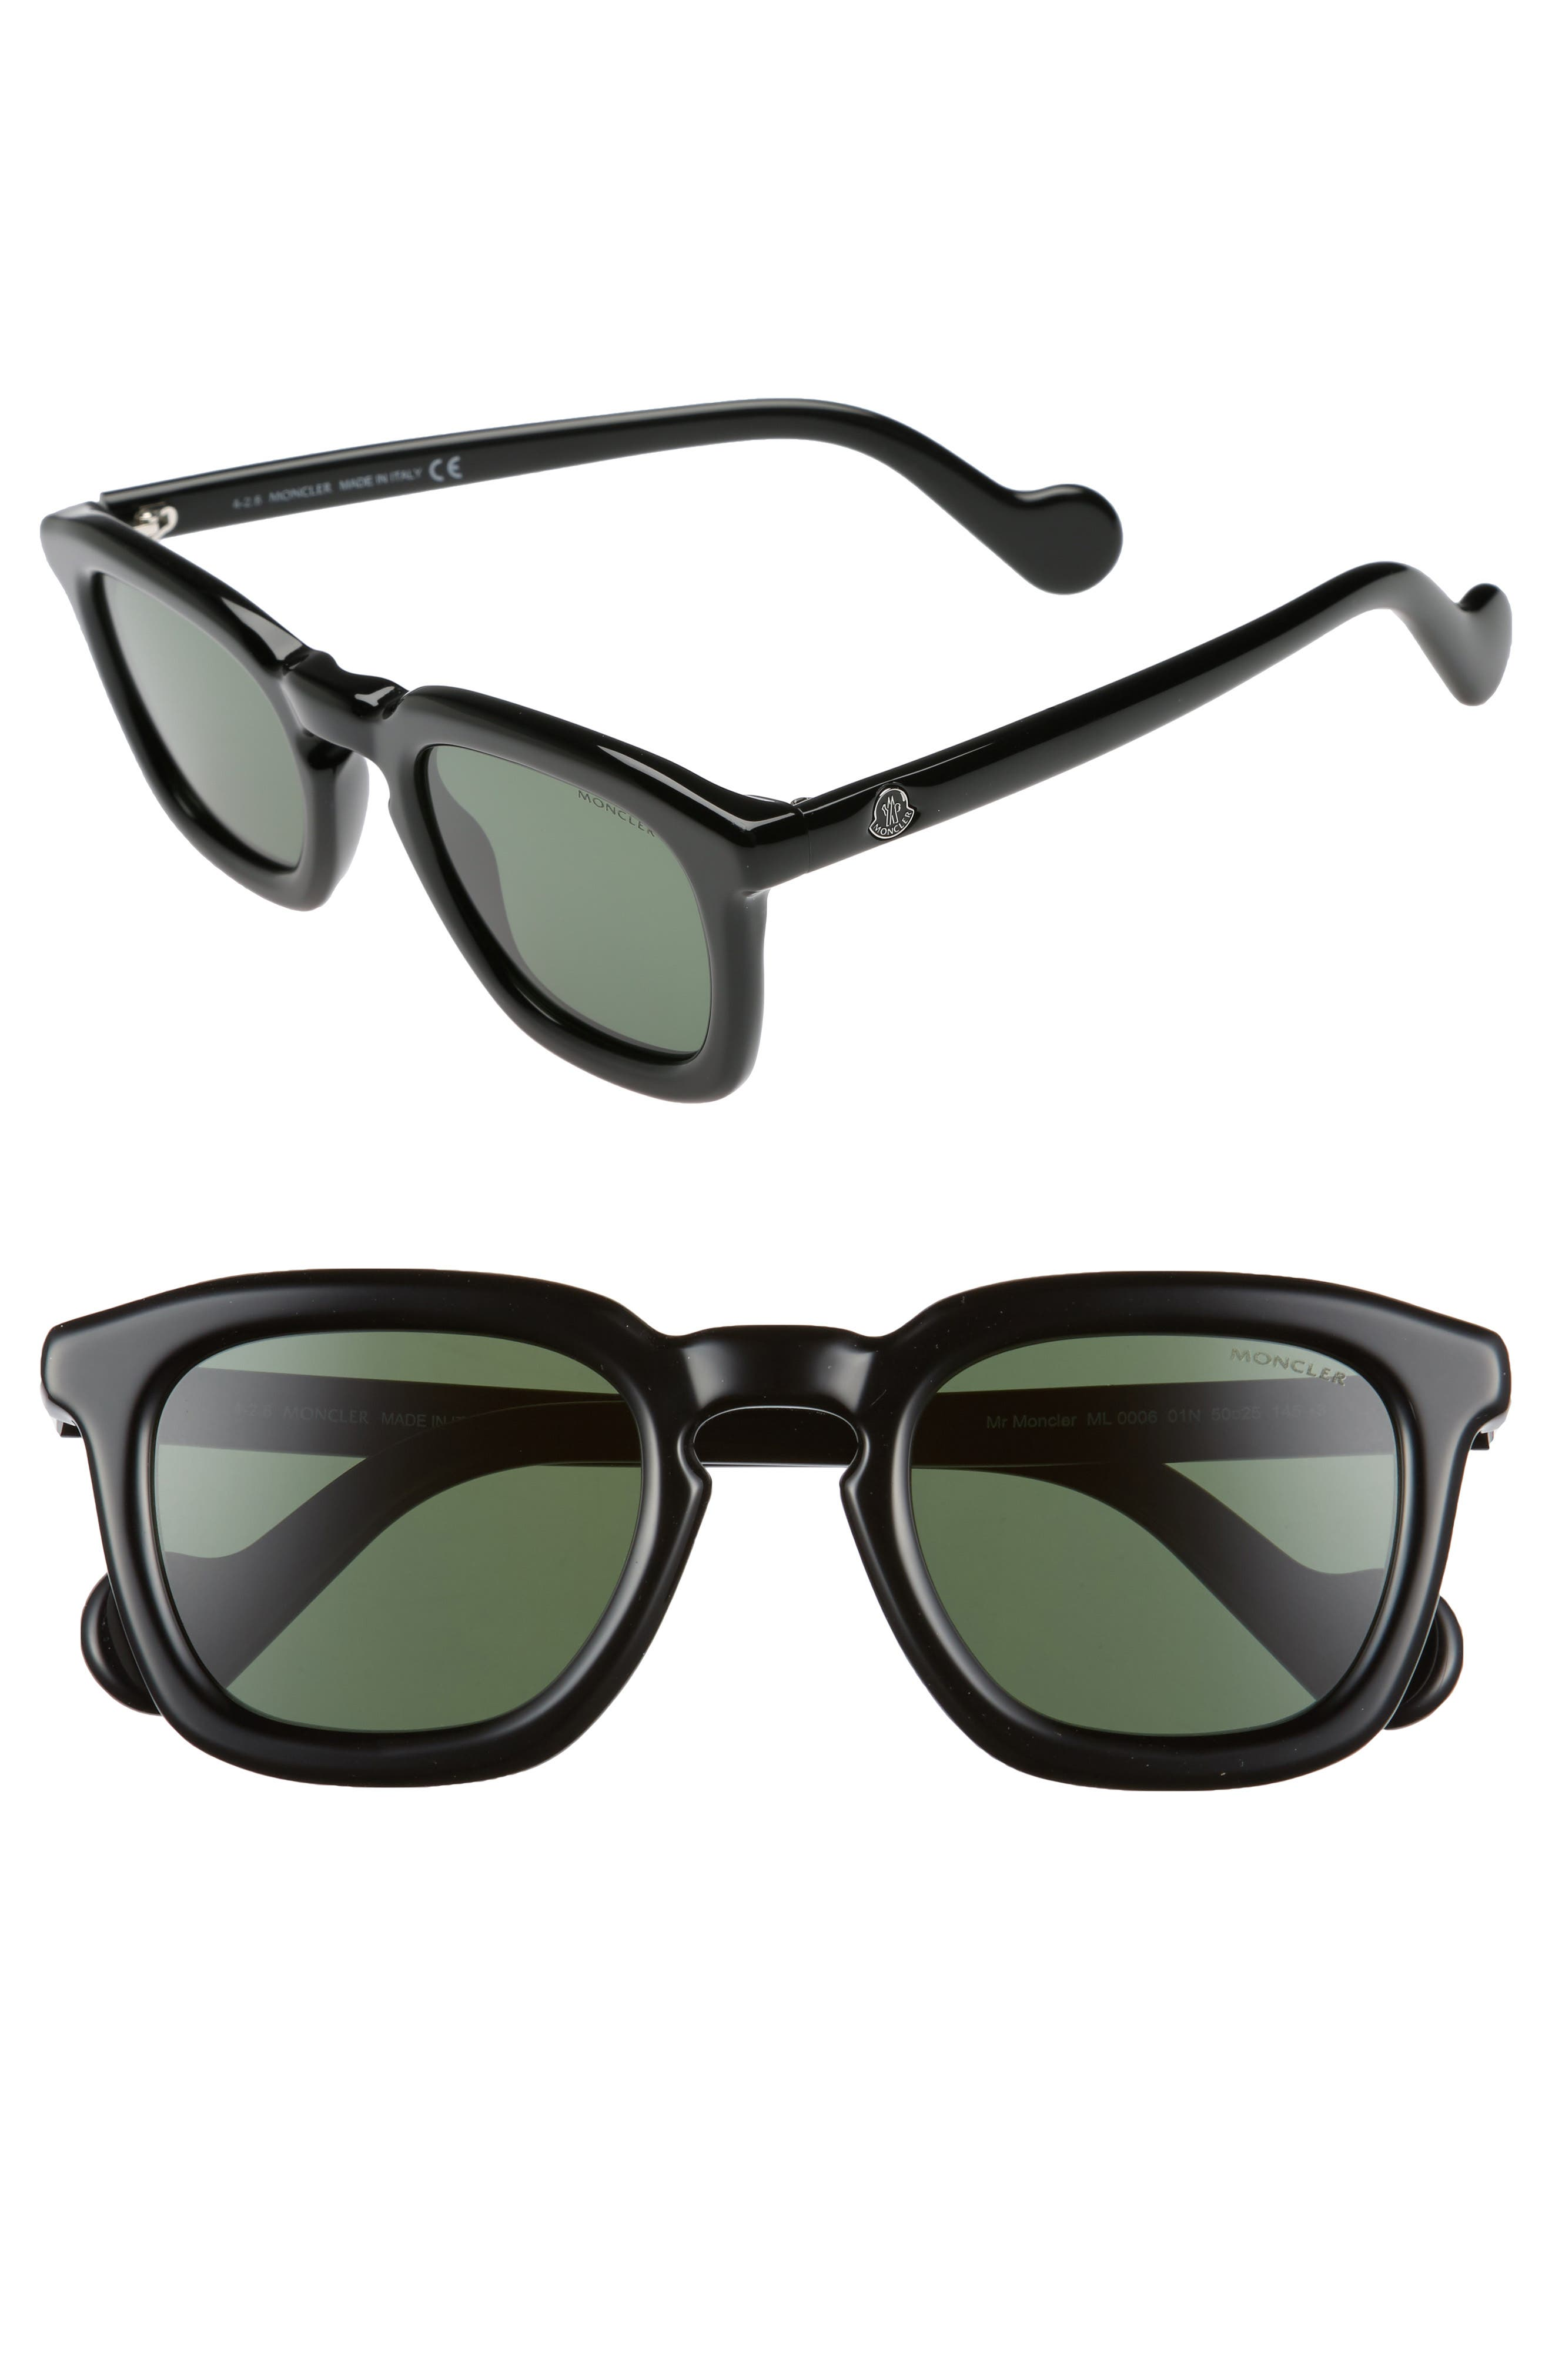 50mm Square Sunglasses,                             Main thumbnail 1, color,                             Black/ Green